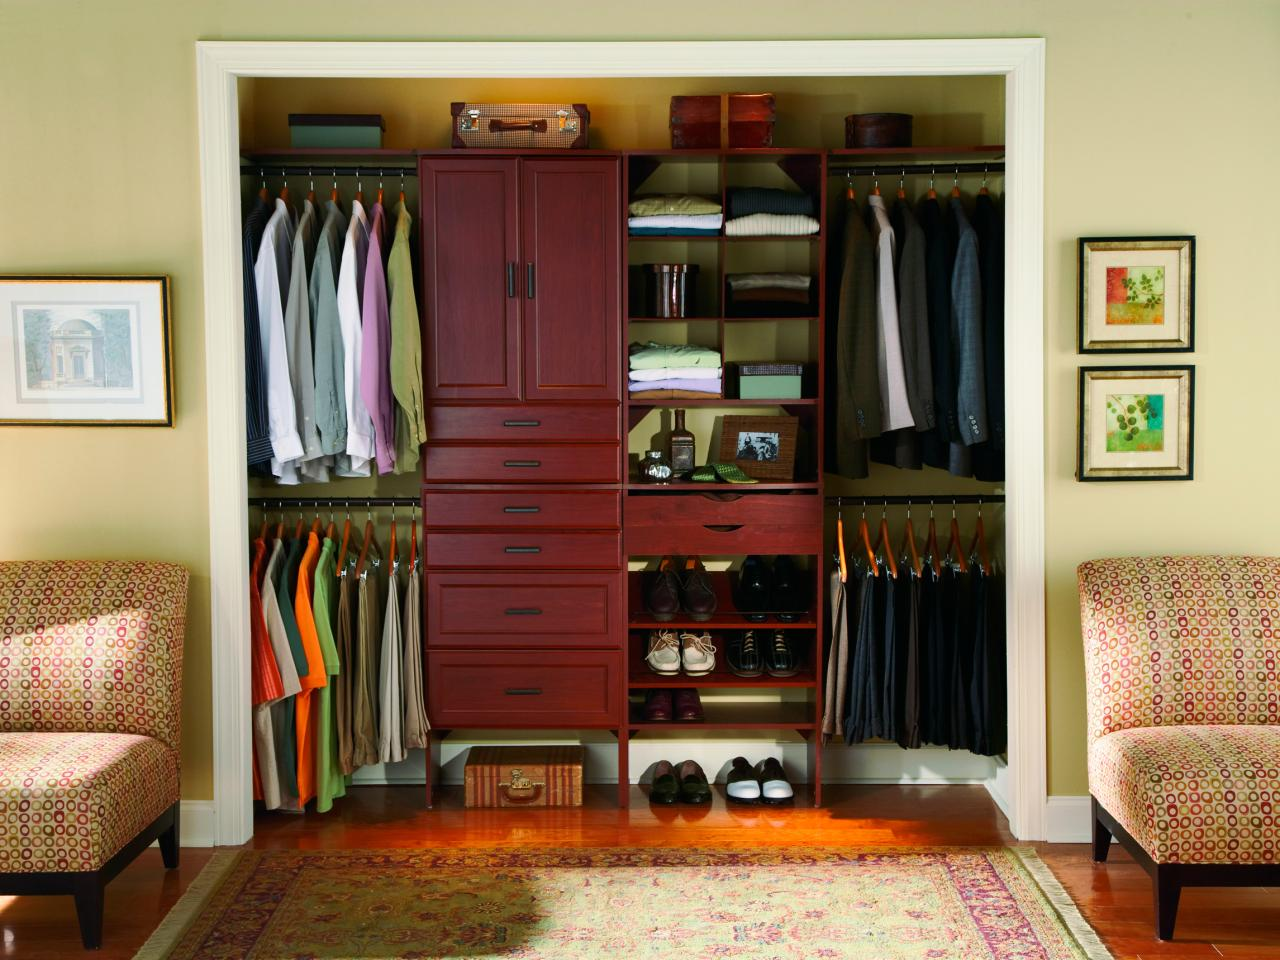 Closet Organizing Ideas Best Small Closet Organization Ideas Pictures Options & Tips  Hgtv 2017